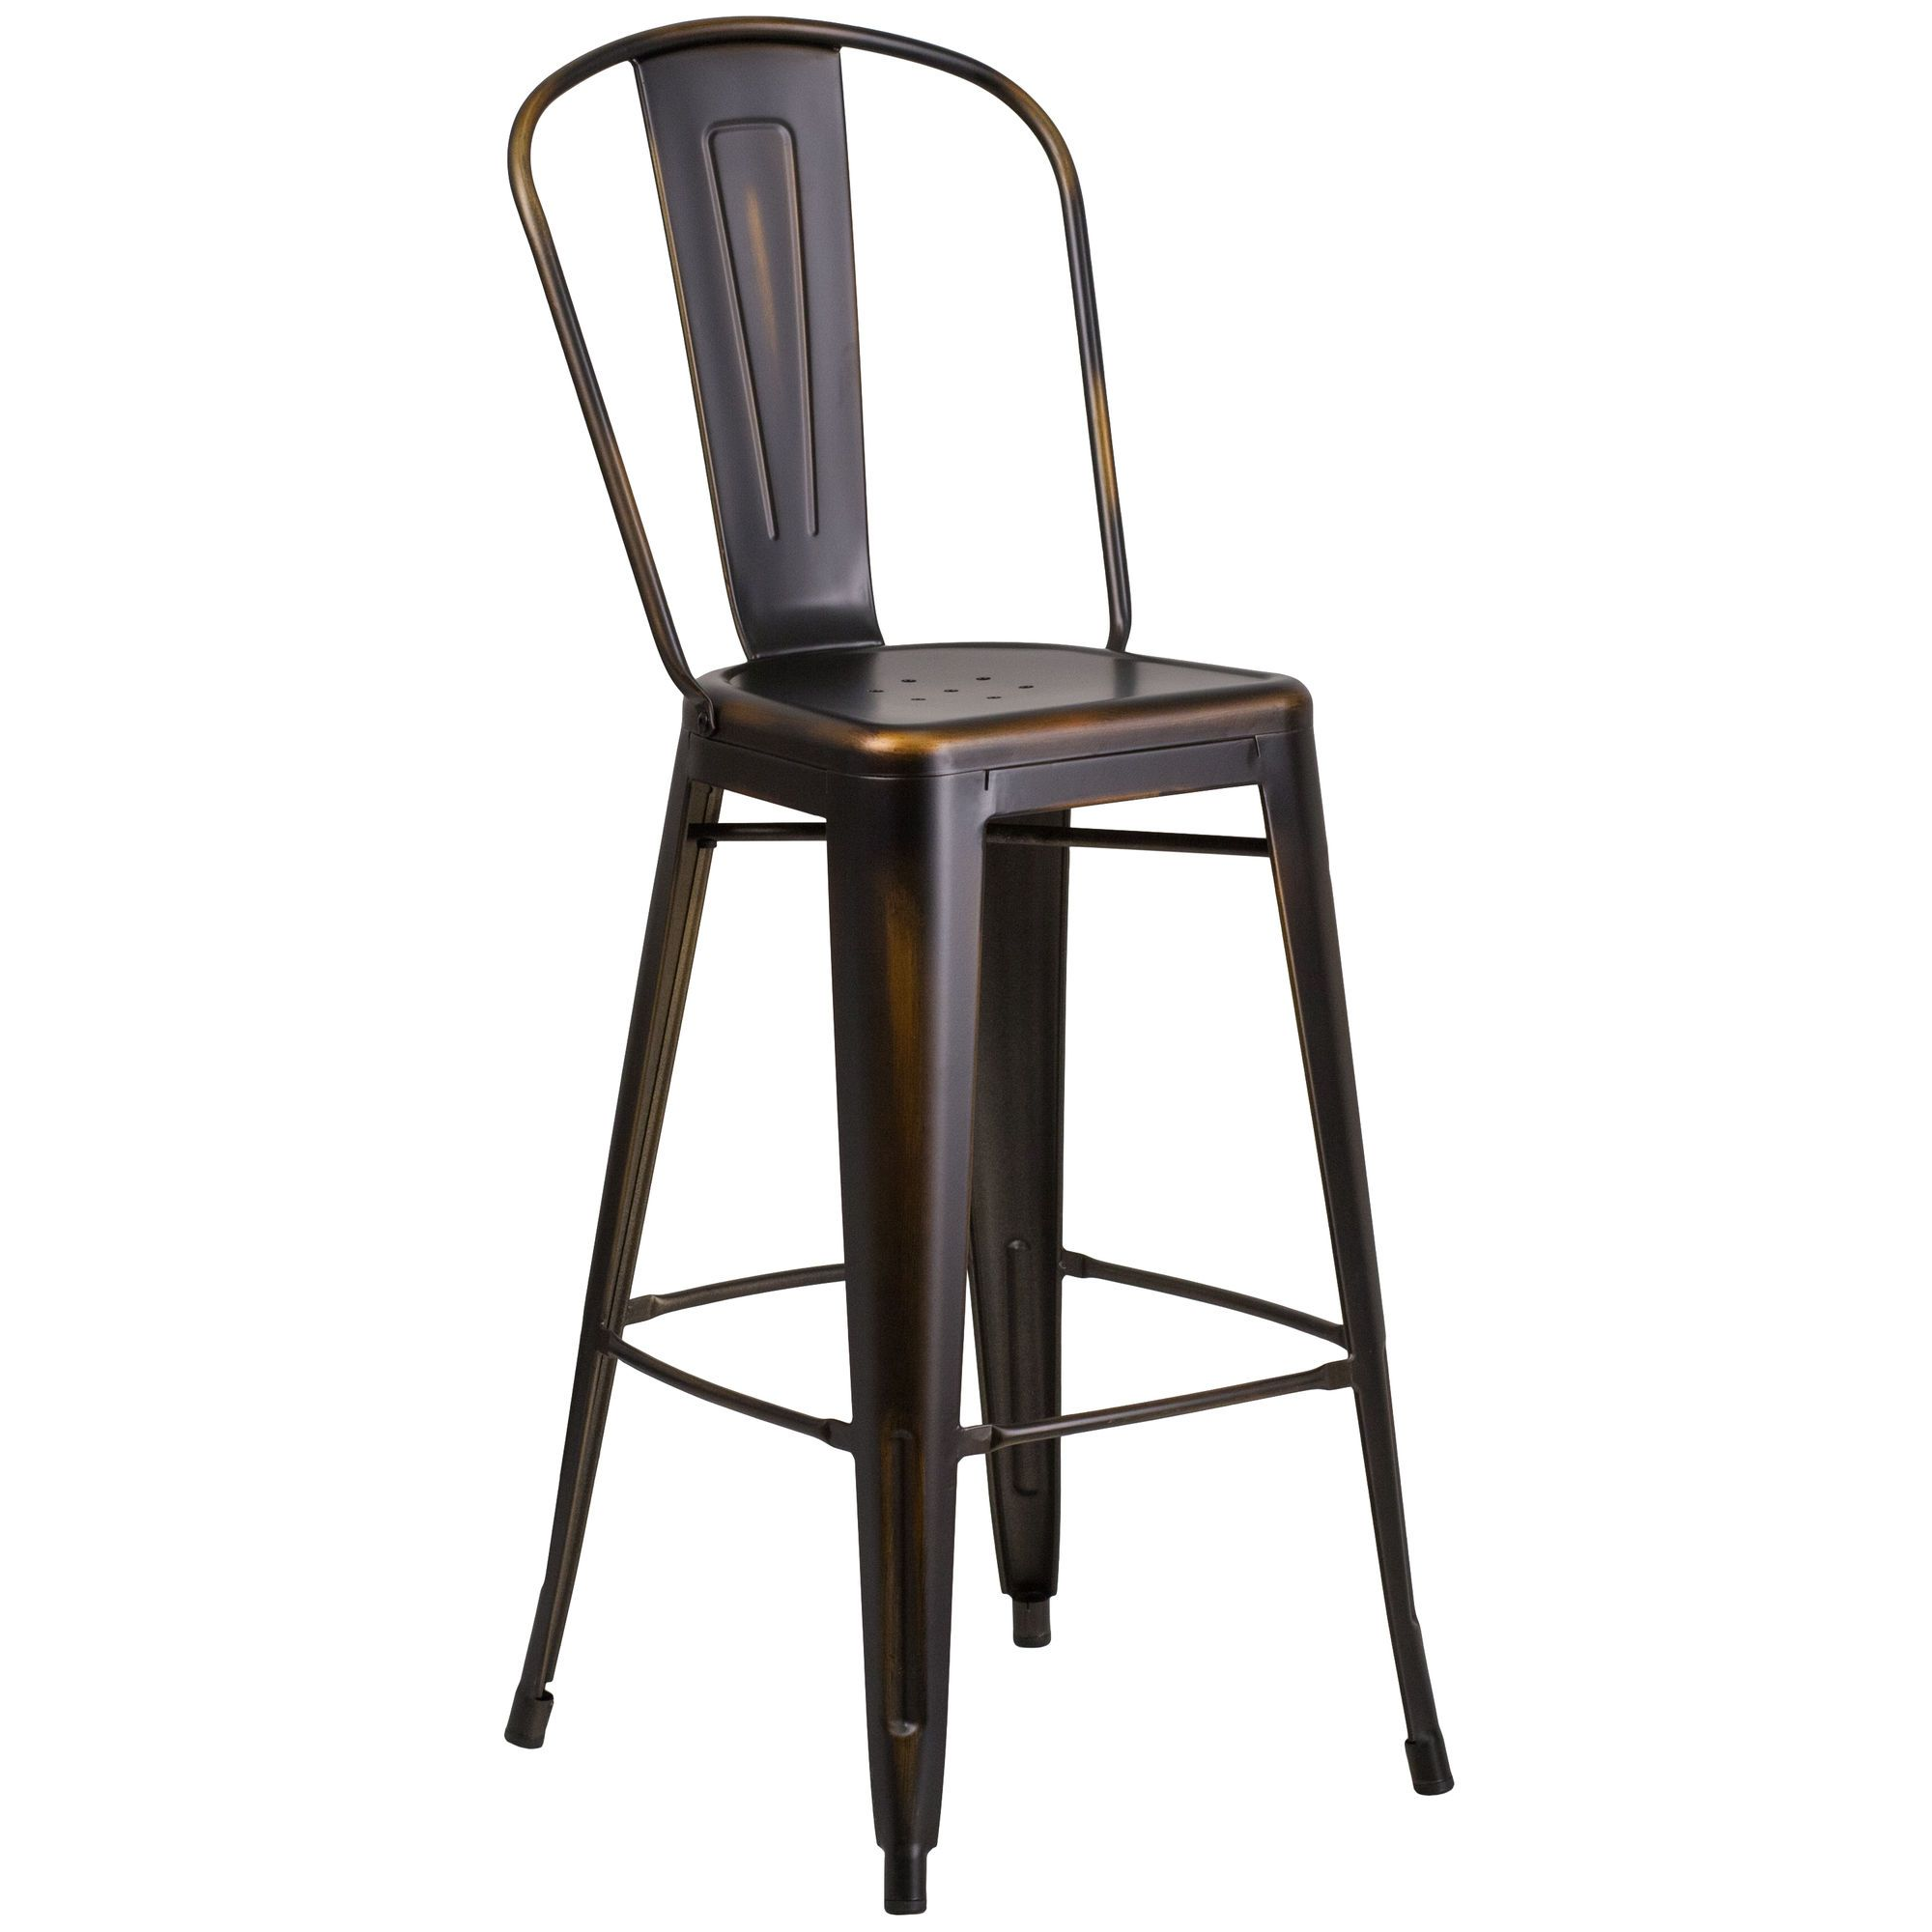 Commercial Grade 30 High Distressed Copper Metal Indoor Outdoor Barstool With Back Outdoor Bar Stools Bar Stools Metal Bar Stools